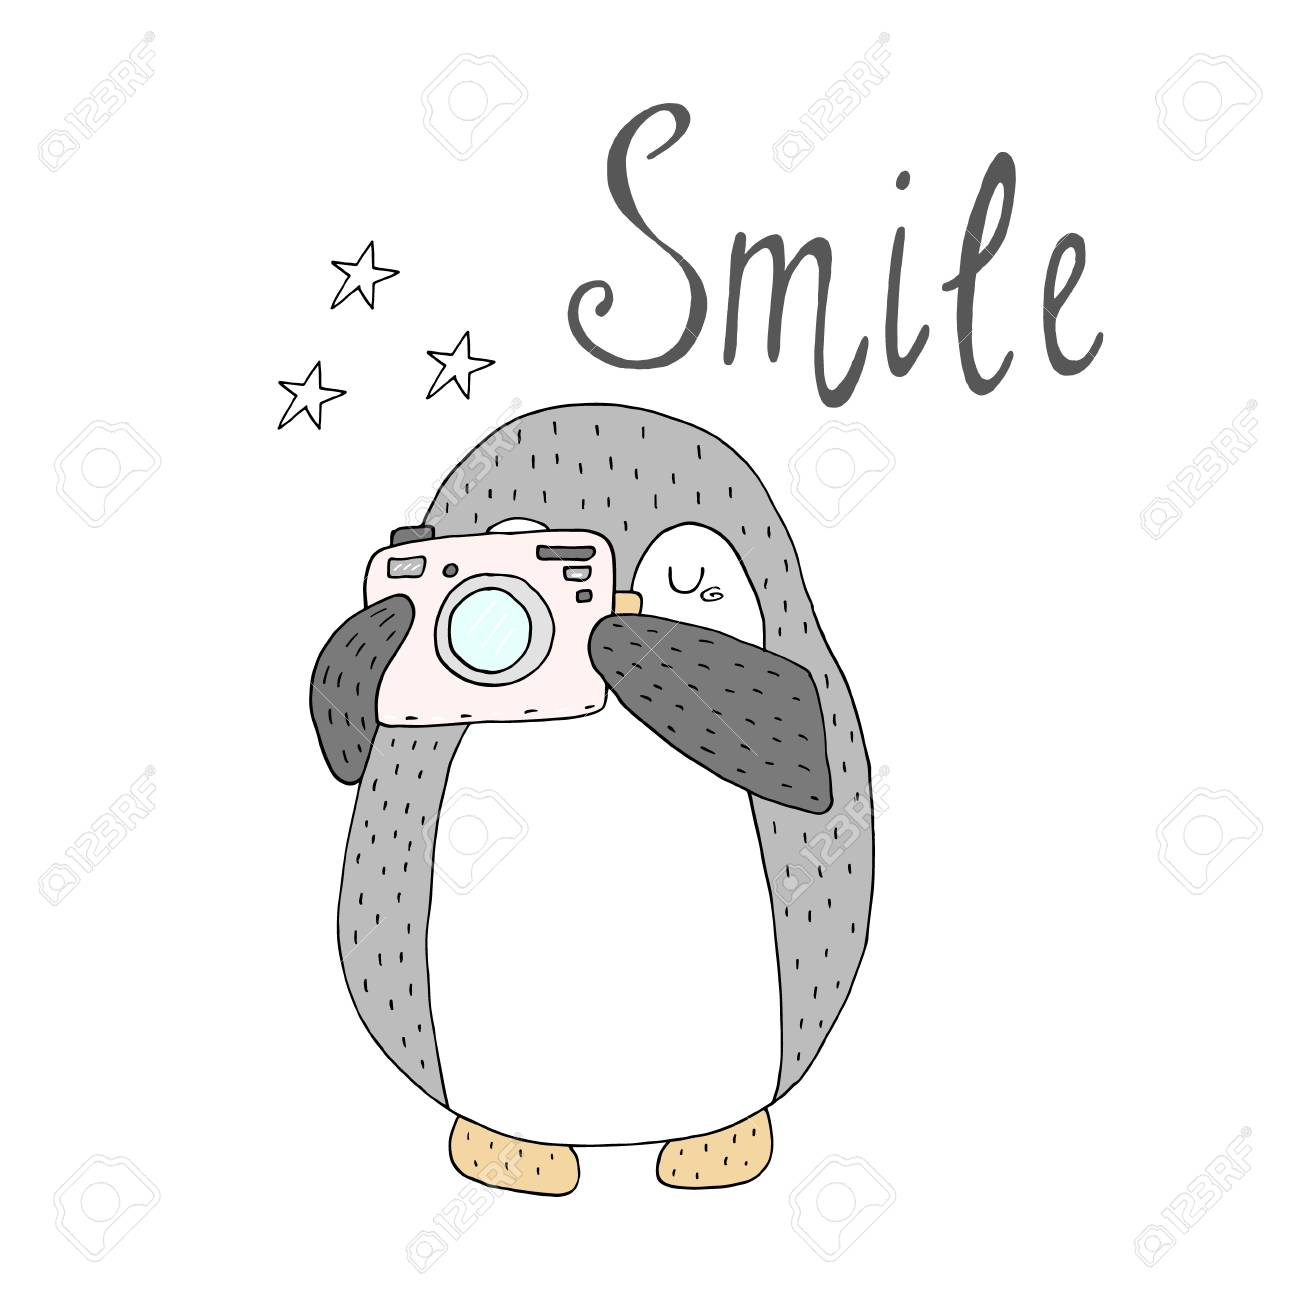 photograph relating to Penguins Printable named Smile card with penguins. Printable templates layout.